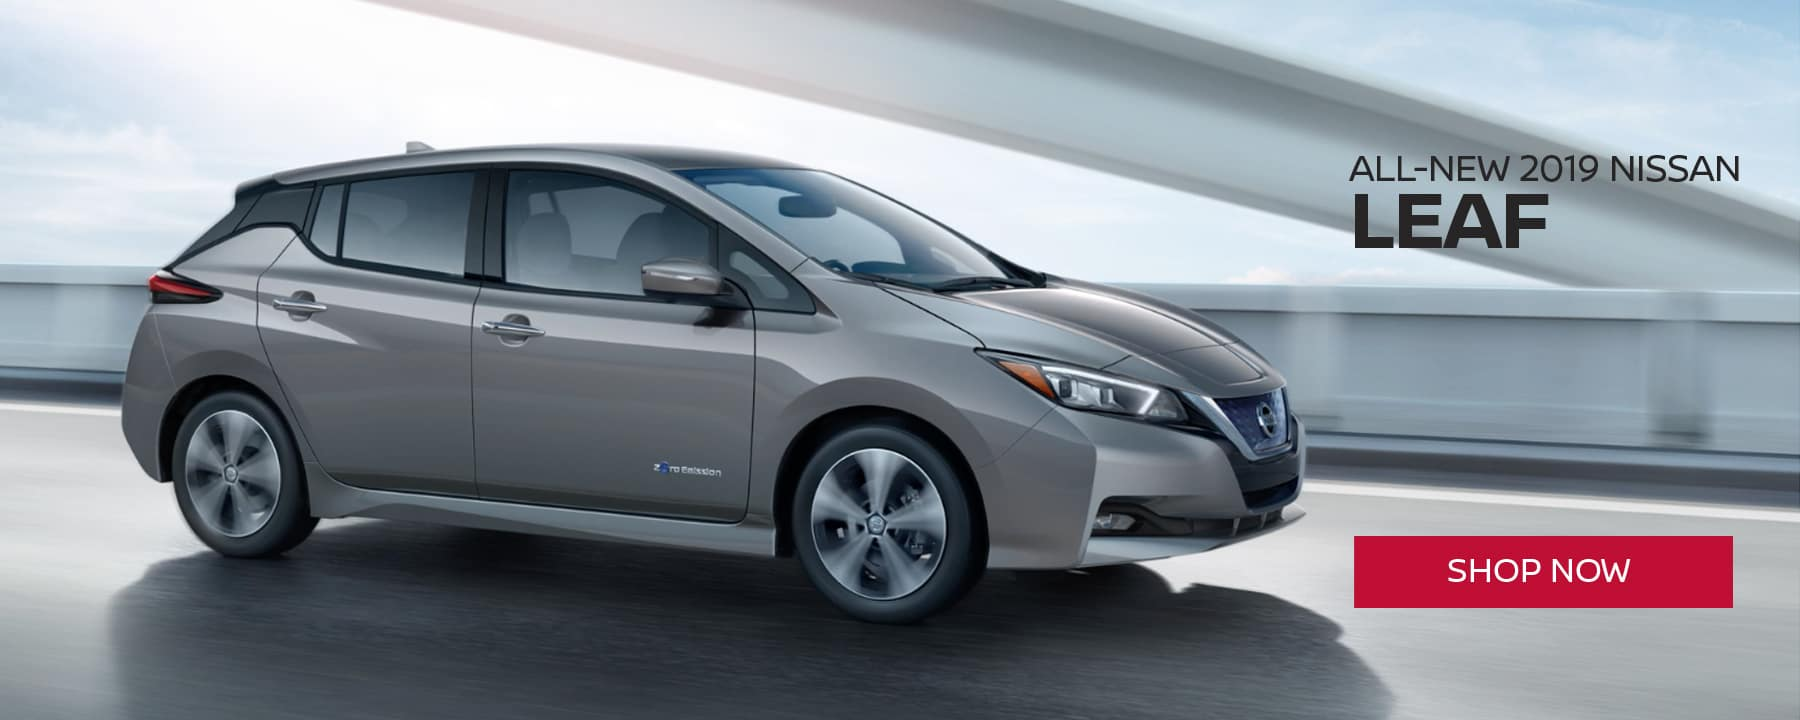 Shop the 2019 Nissan LEAF now at Star Nissan!